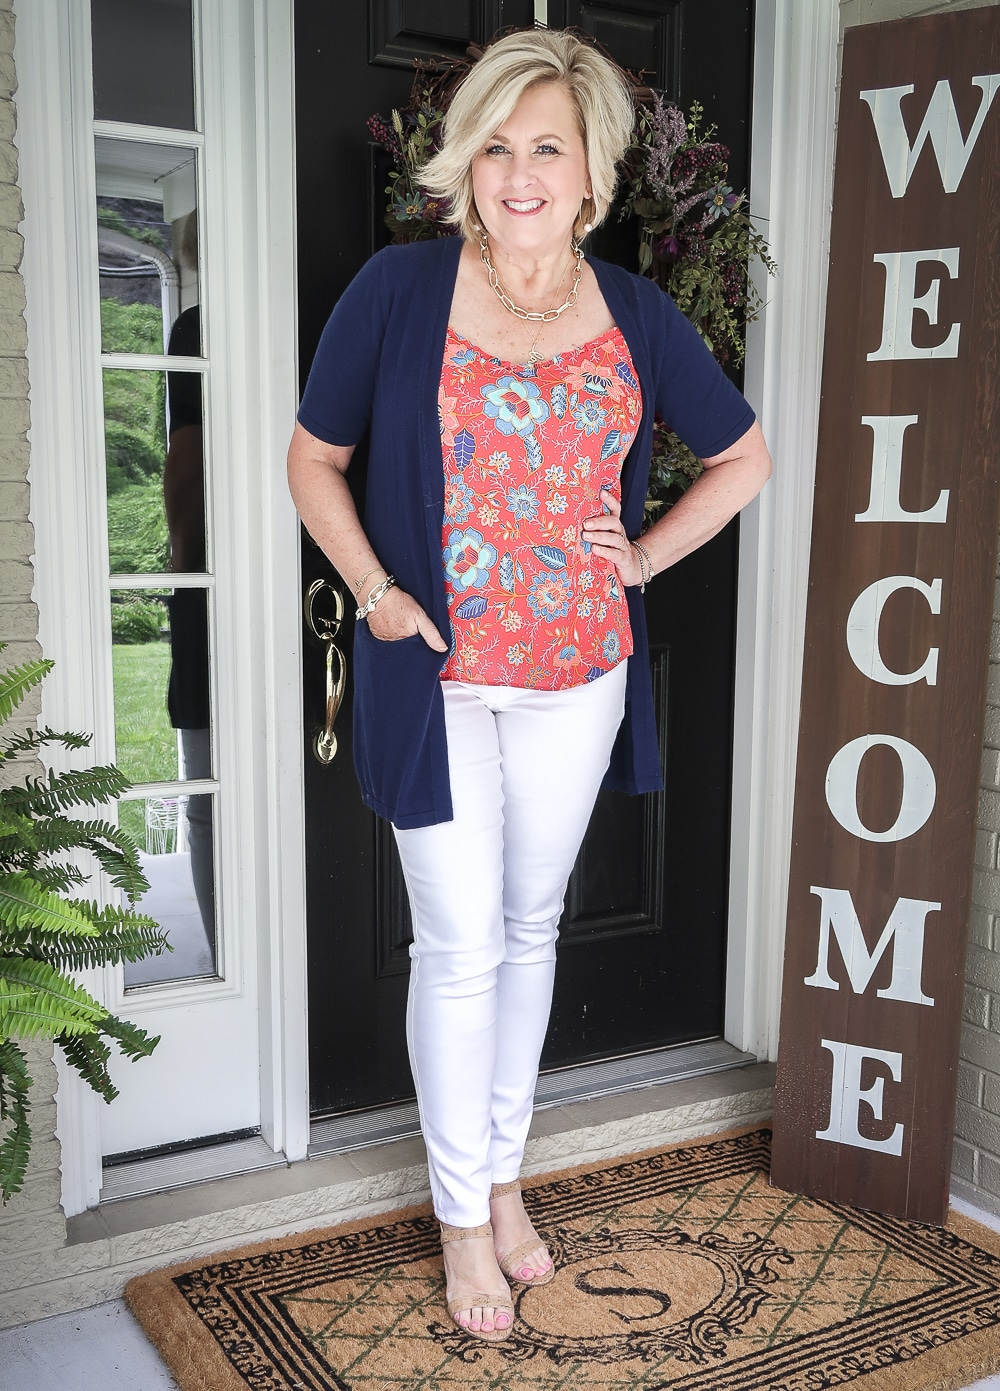 Fashion Blogger 50 Is Not Old is wearing a bright red ruffled cami with white jeggings and a navy short sleeved cardigan